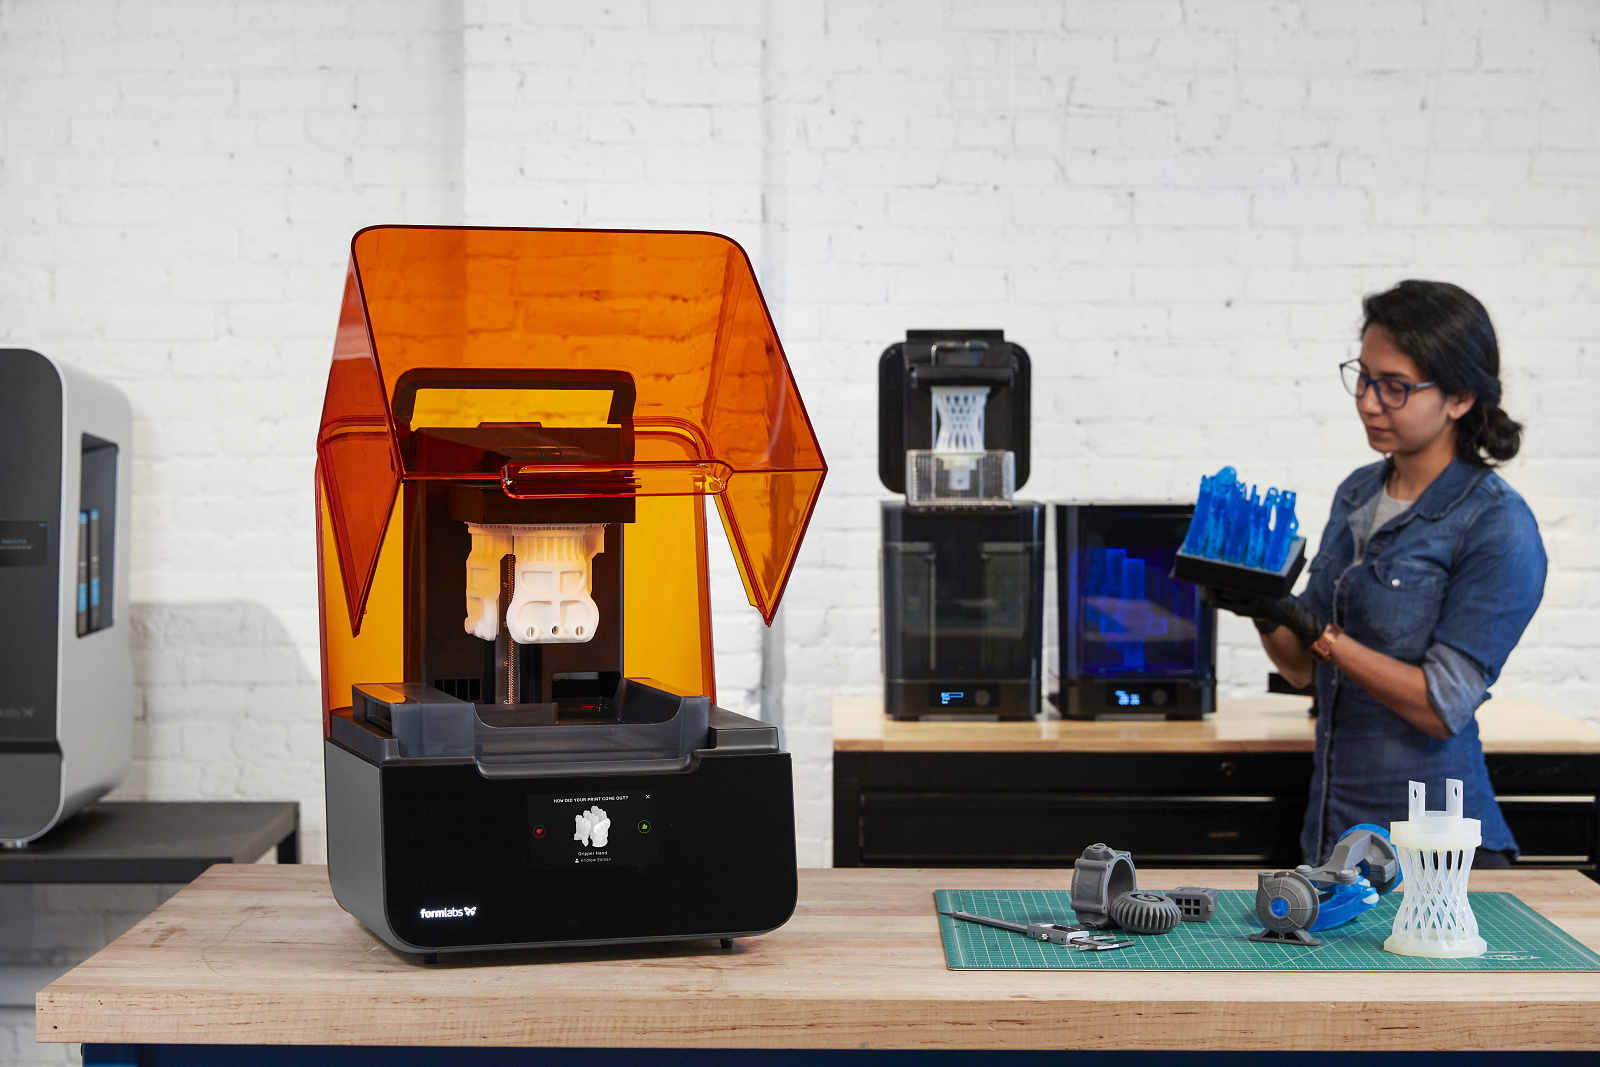 Formlabs-Form-3-ecosystem-06172019_F3 ads_251